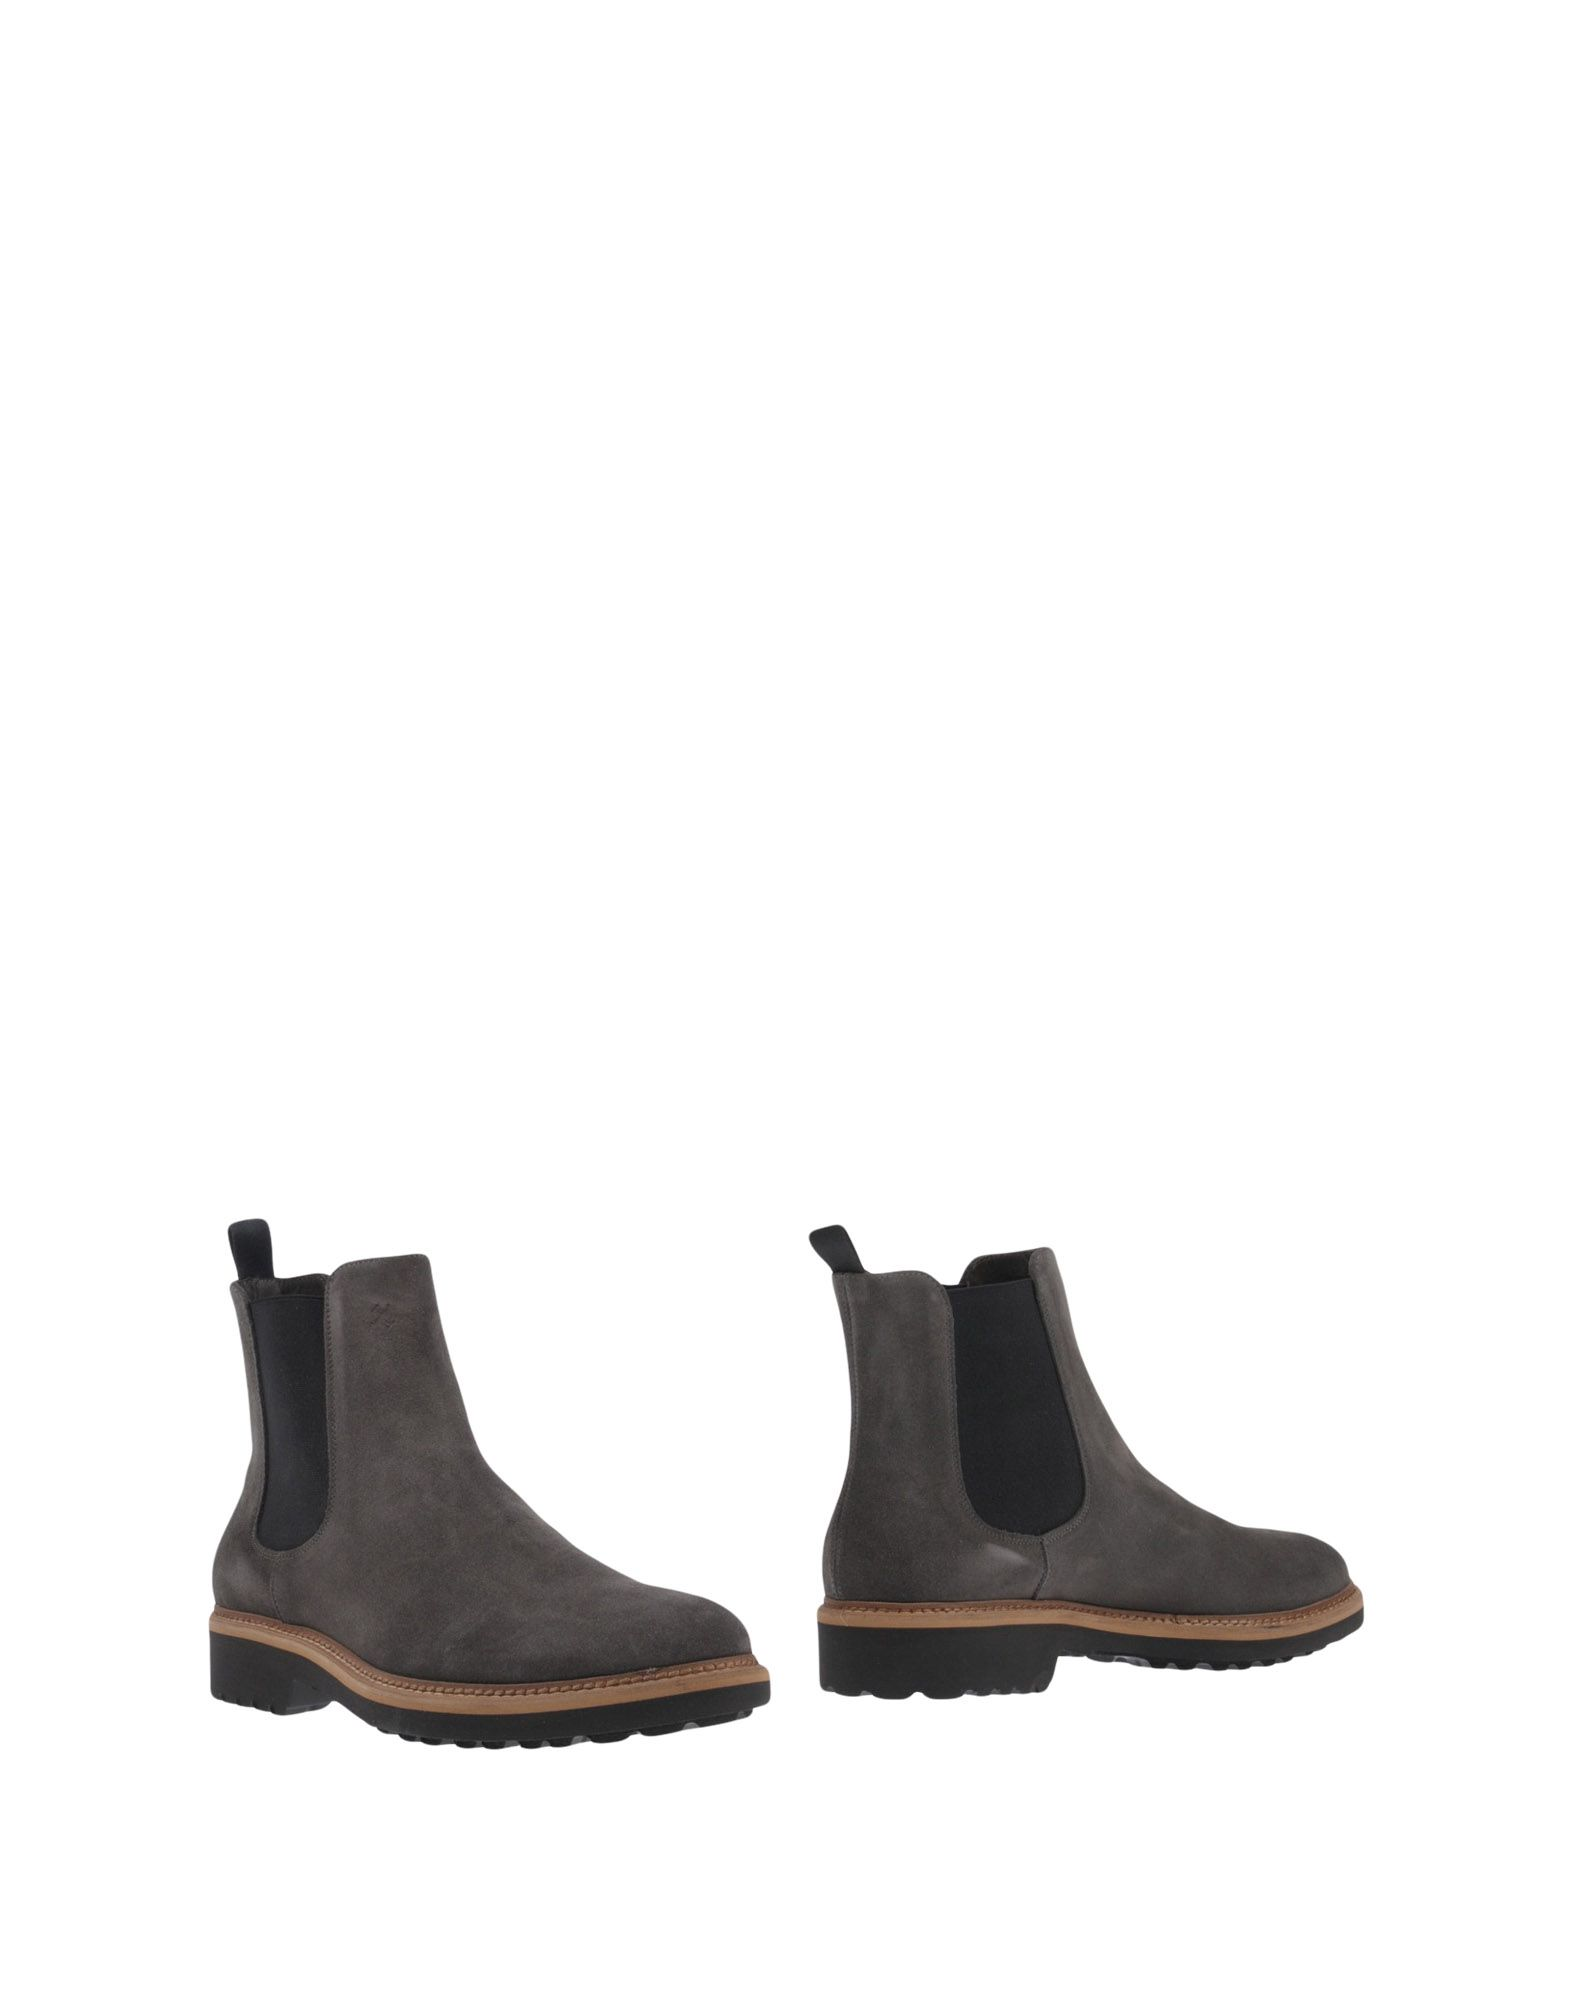 Alexander Trend Boots - Men Alexander Trend Boots online on 11454596KA  United Kingdom - 11454596KA on b3cee9